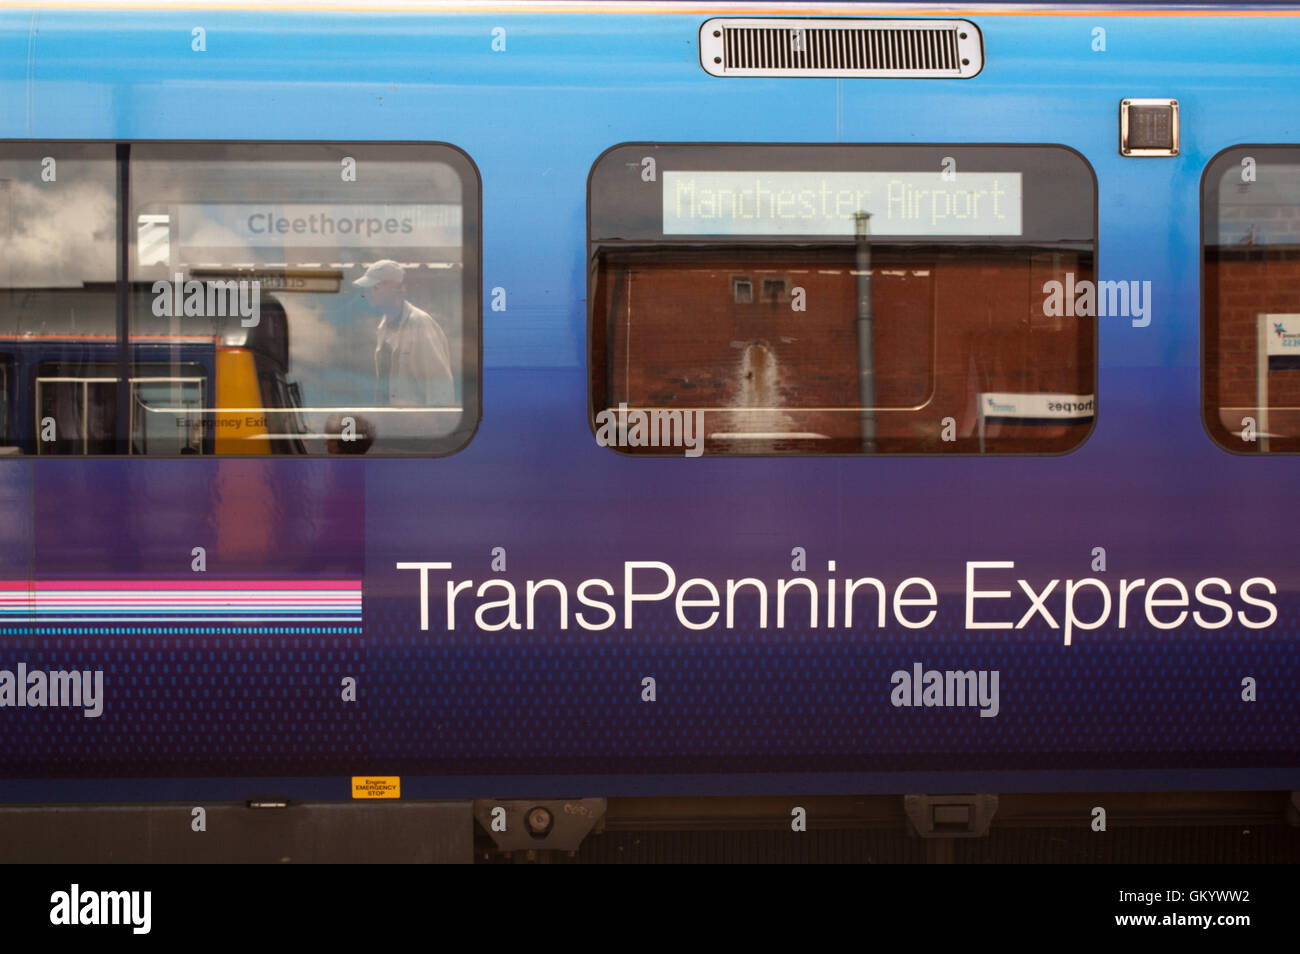 TransPennine Express train at Cleethorpes station with reflection of Northern Rail Pacer unit - Stock Image